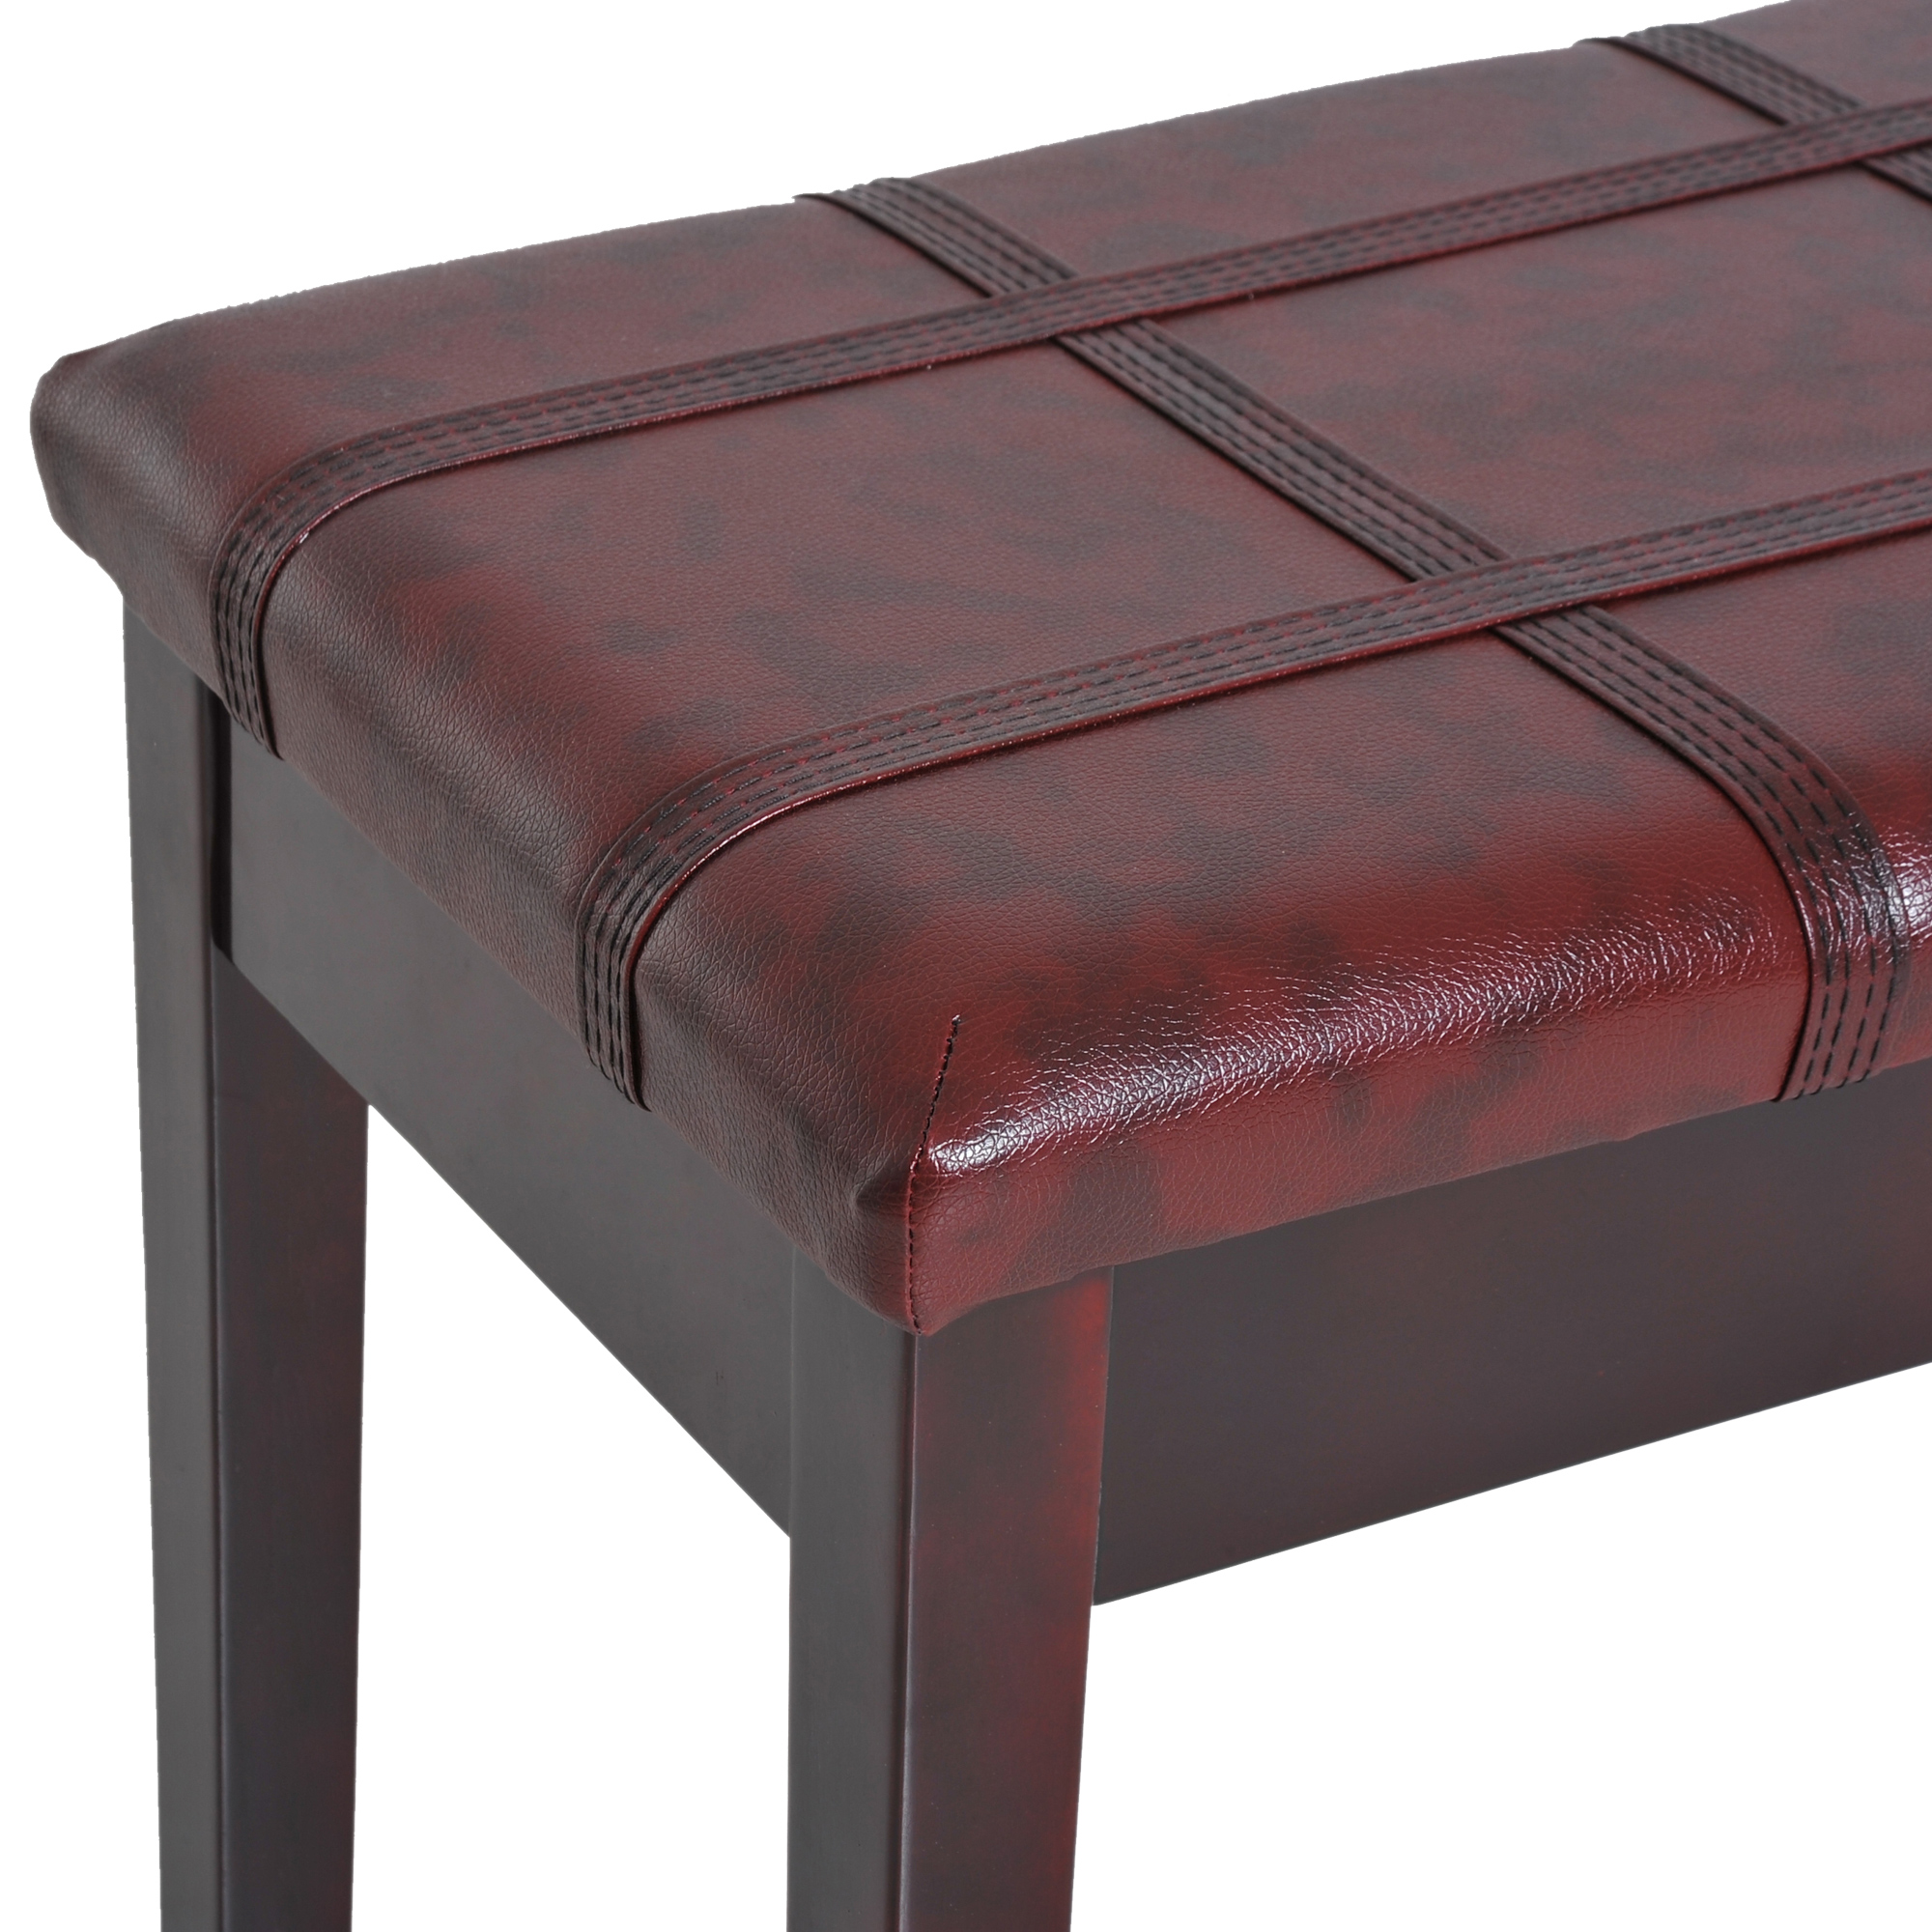 Two-Person-Lift-Top-Piano-Storage-Bench-Faux-Leather-Keyboard-Stool-Birchwood thumbnail 25